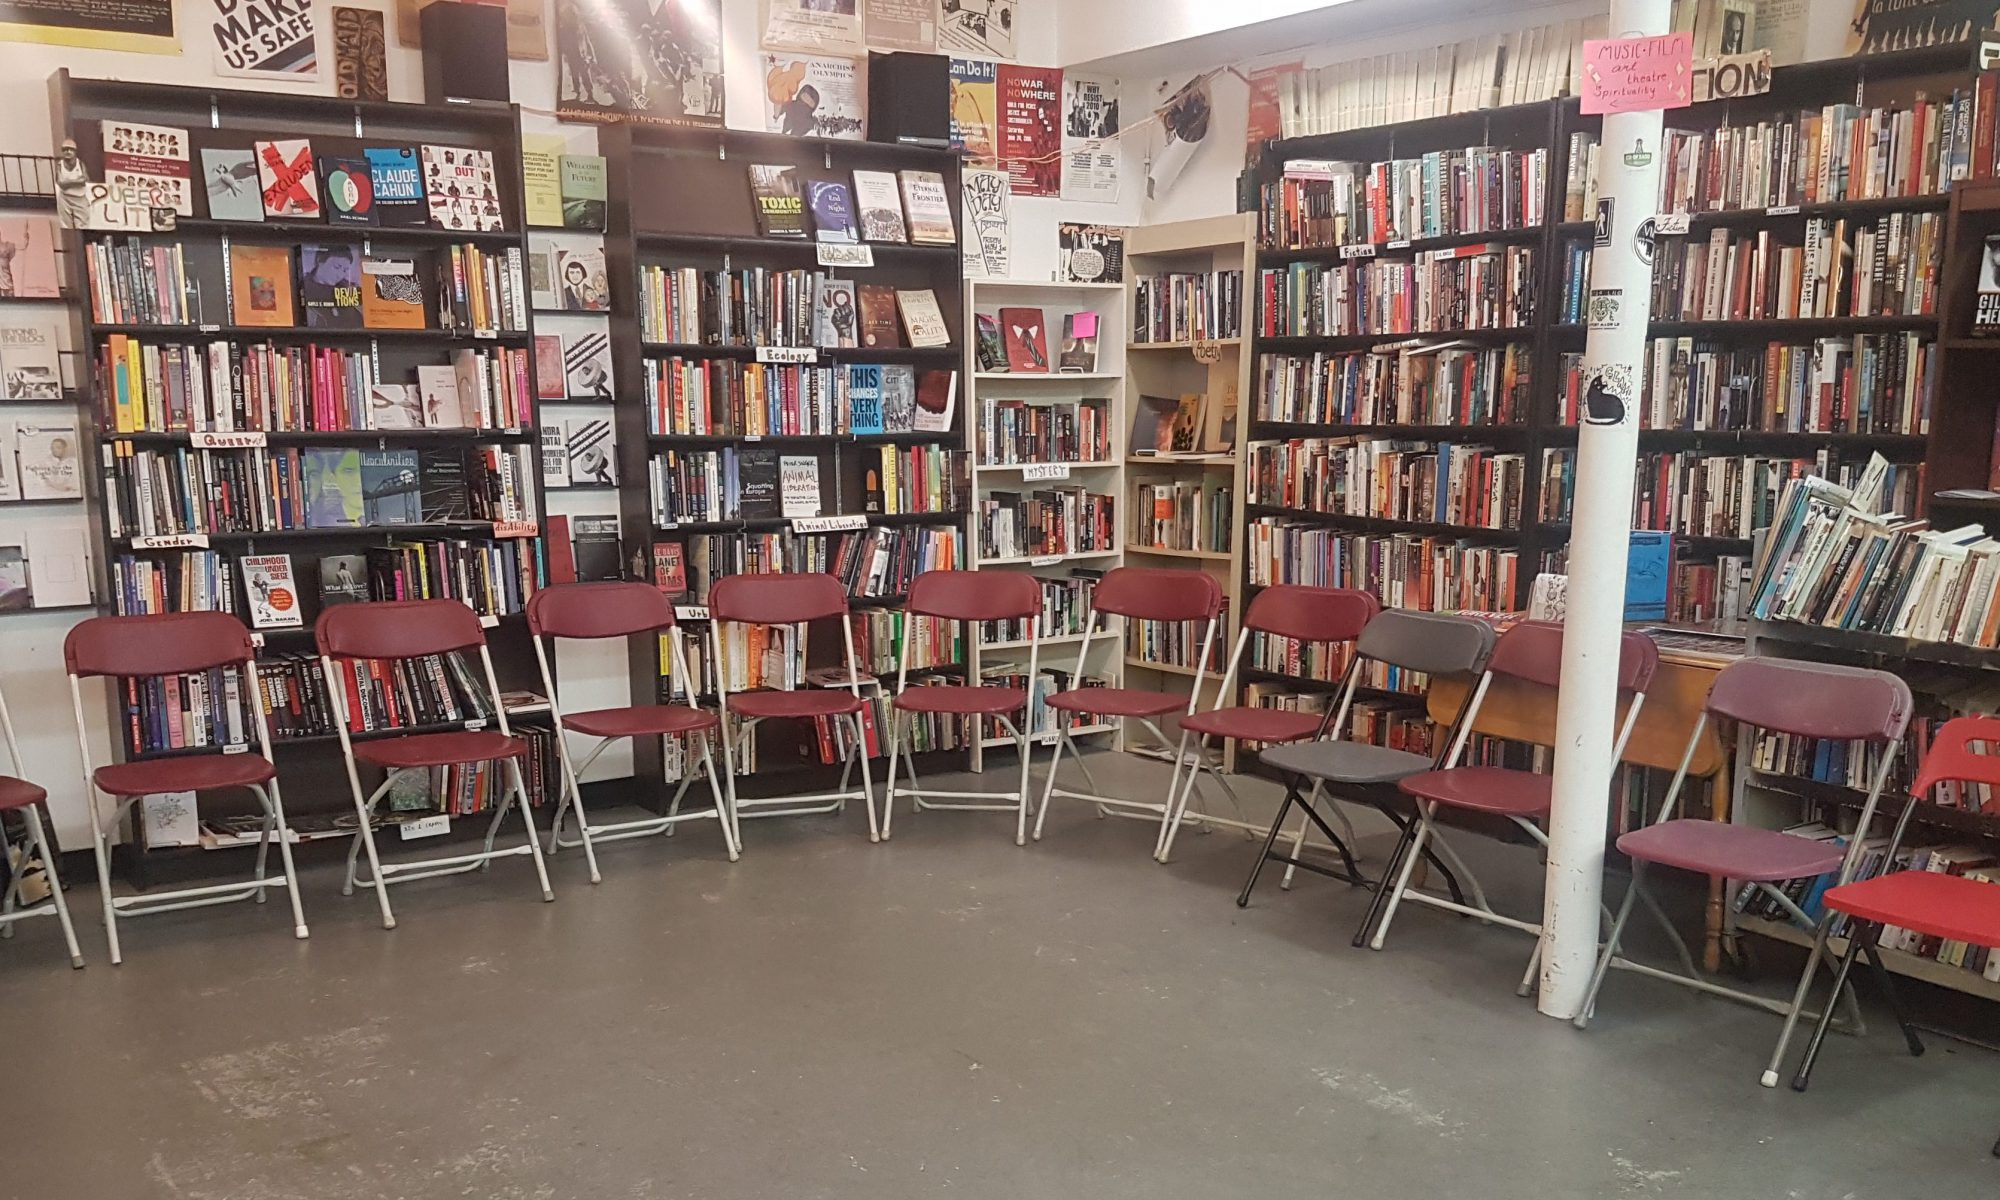 Image of store setup for an event. A circle of about a dozen folding chairs. Behind them are bookcases and the walls are decorated with posters.